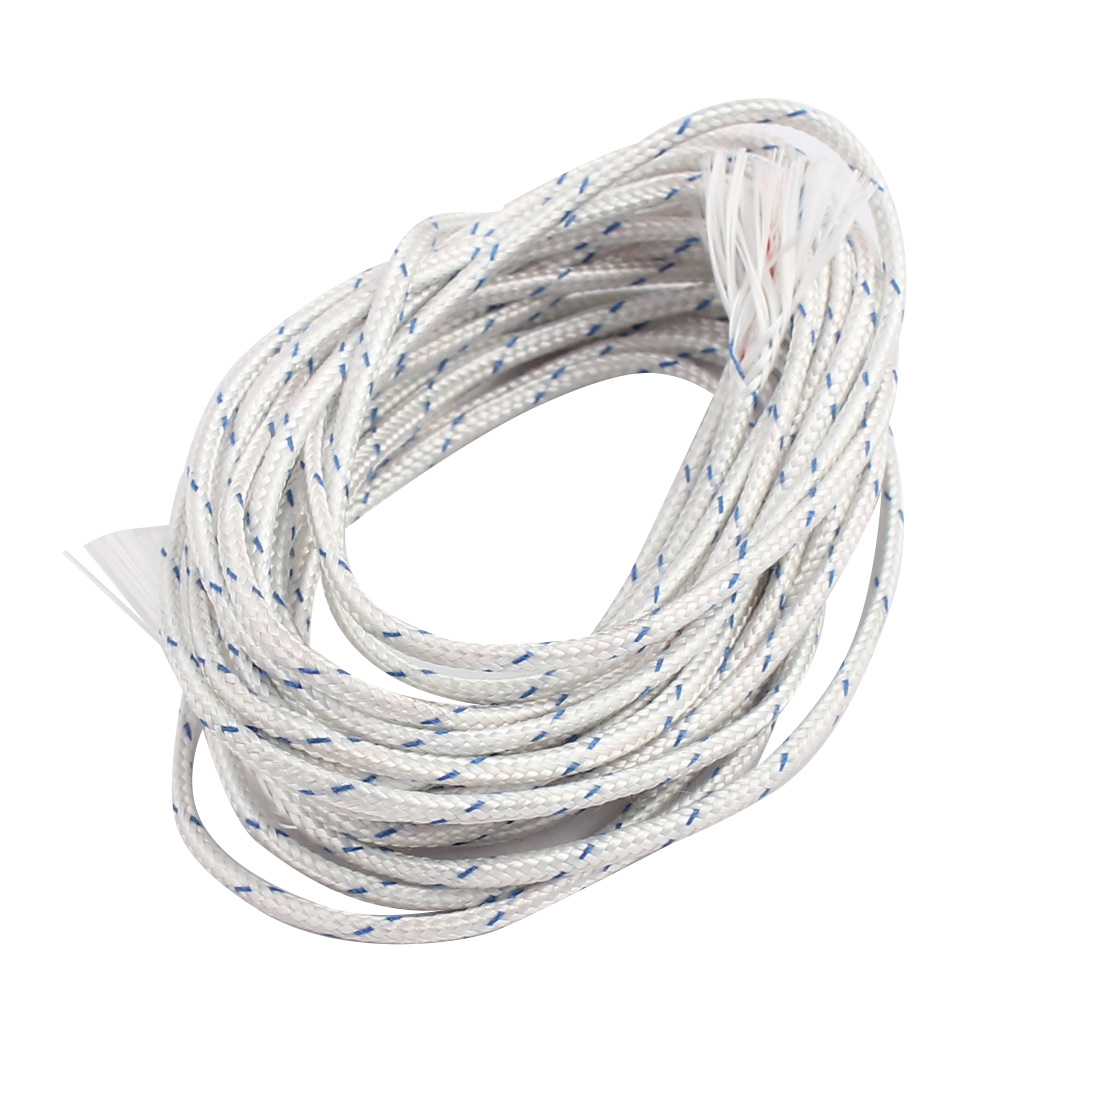 3.1 Meters 0.3mm Width Plastic Braided Thermocouple Extension Wire Cable